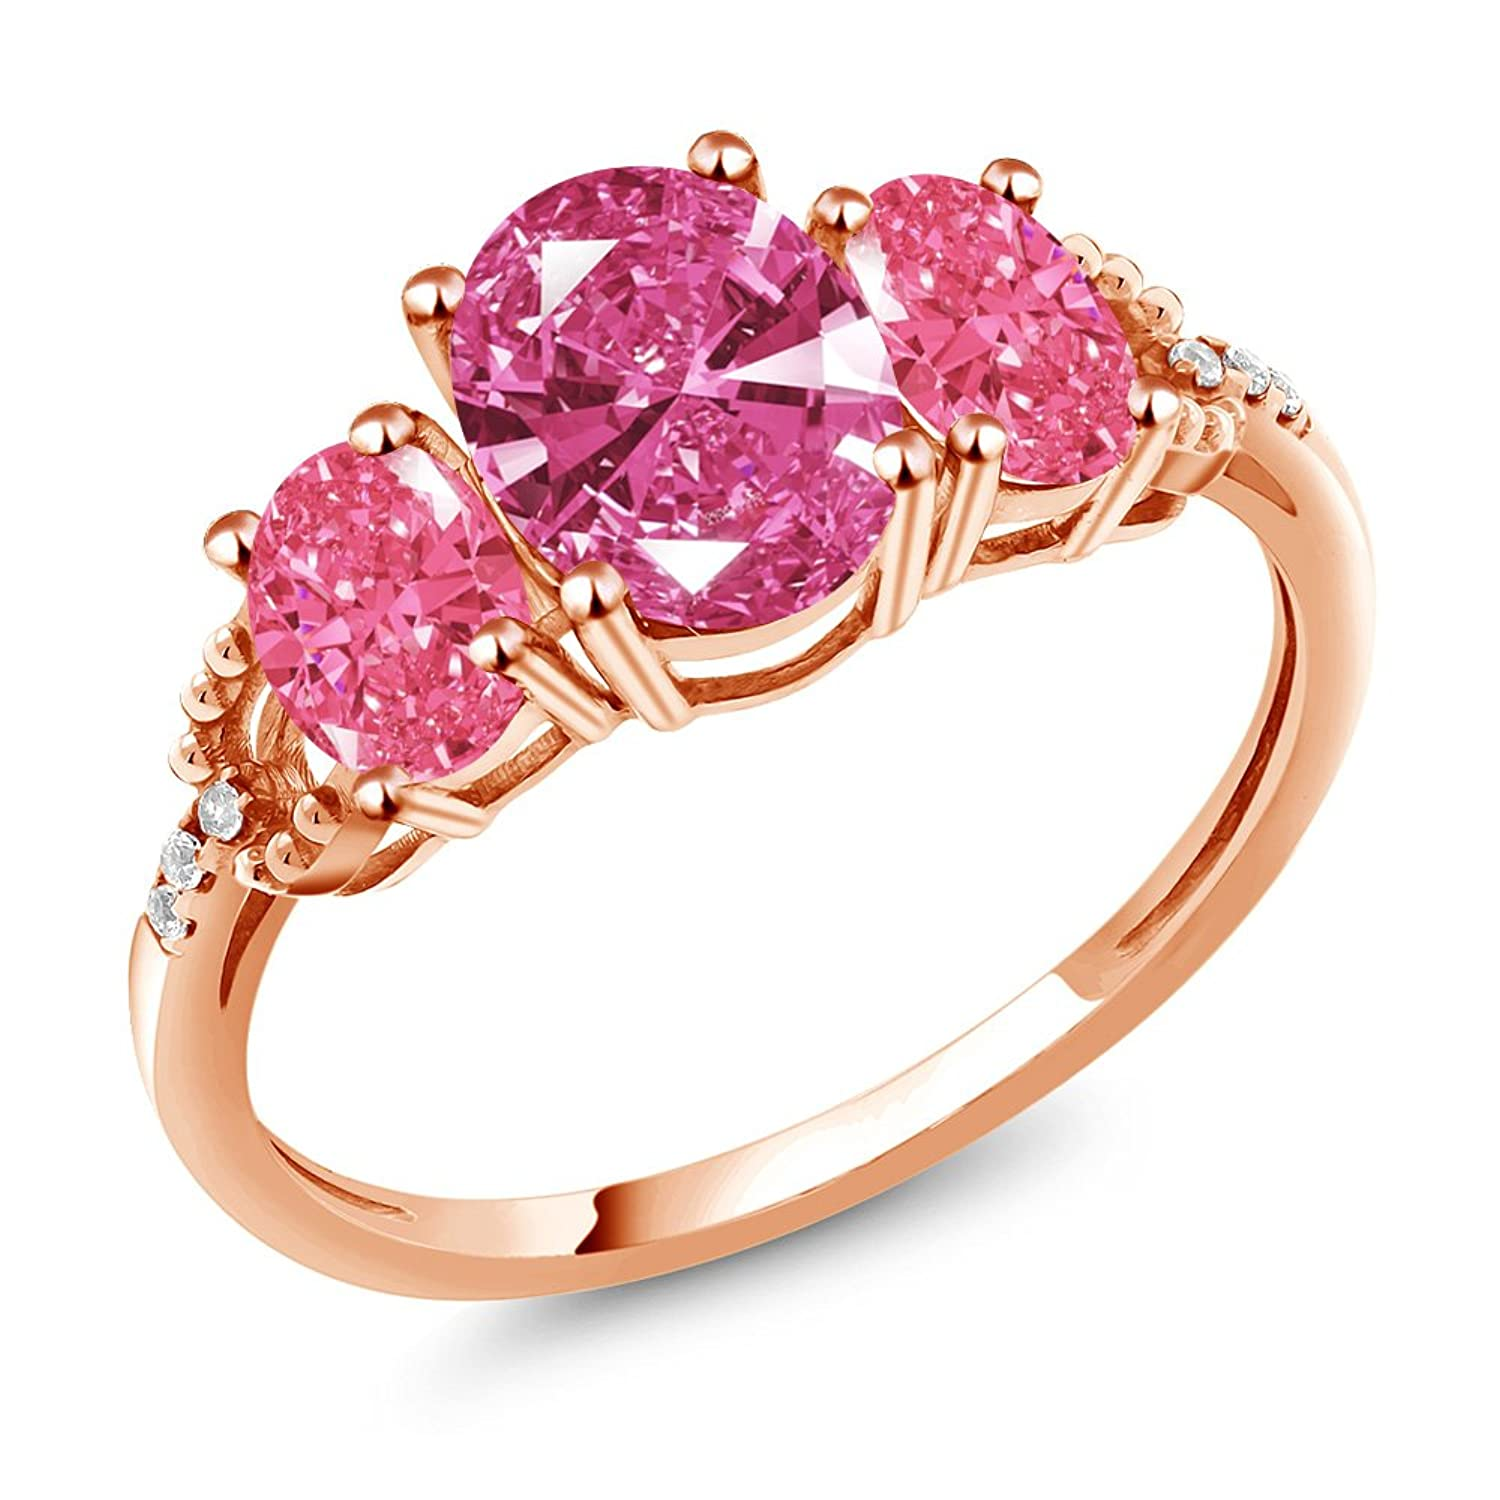 Amazon.com: 10K Rose Gold 3-Stone Diamond Accent Ring Set with Pink ...